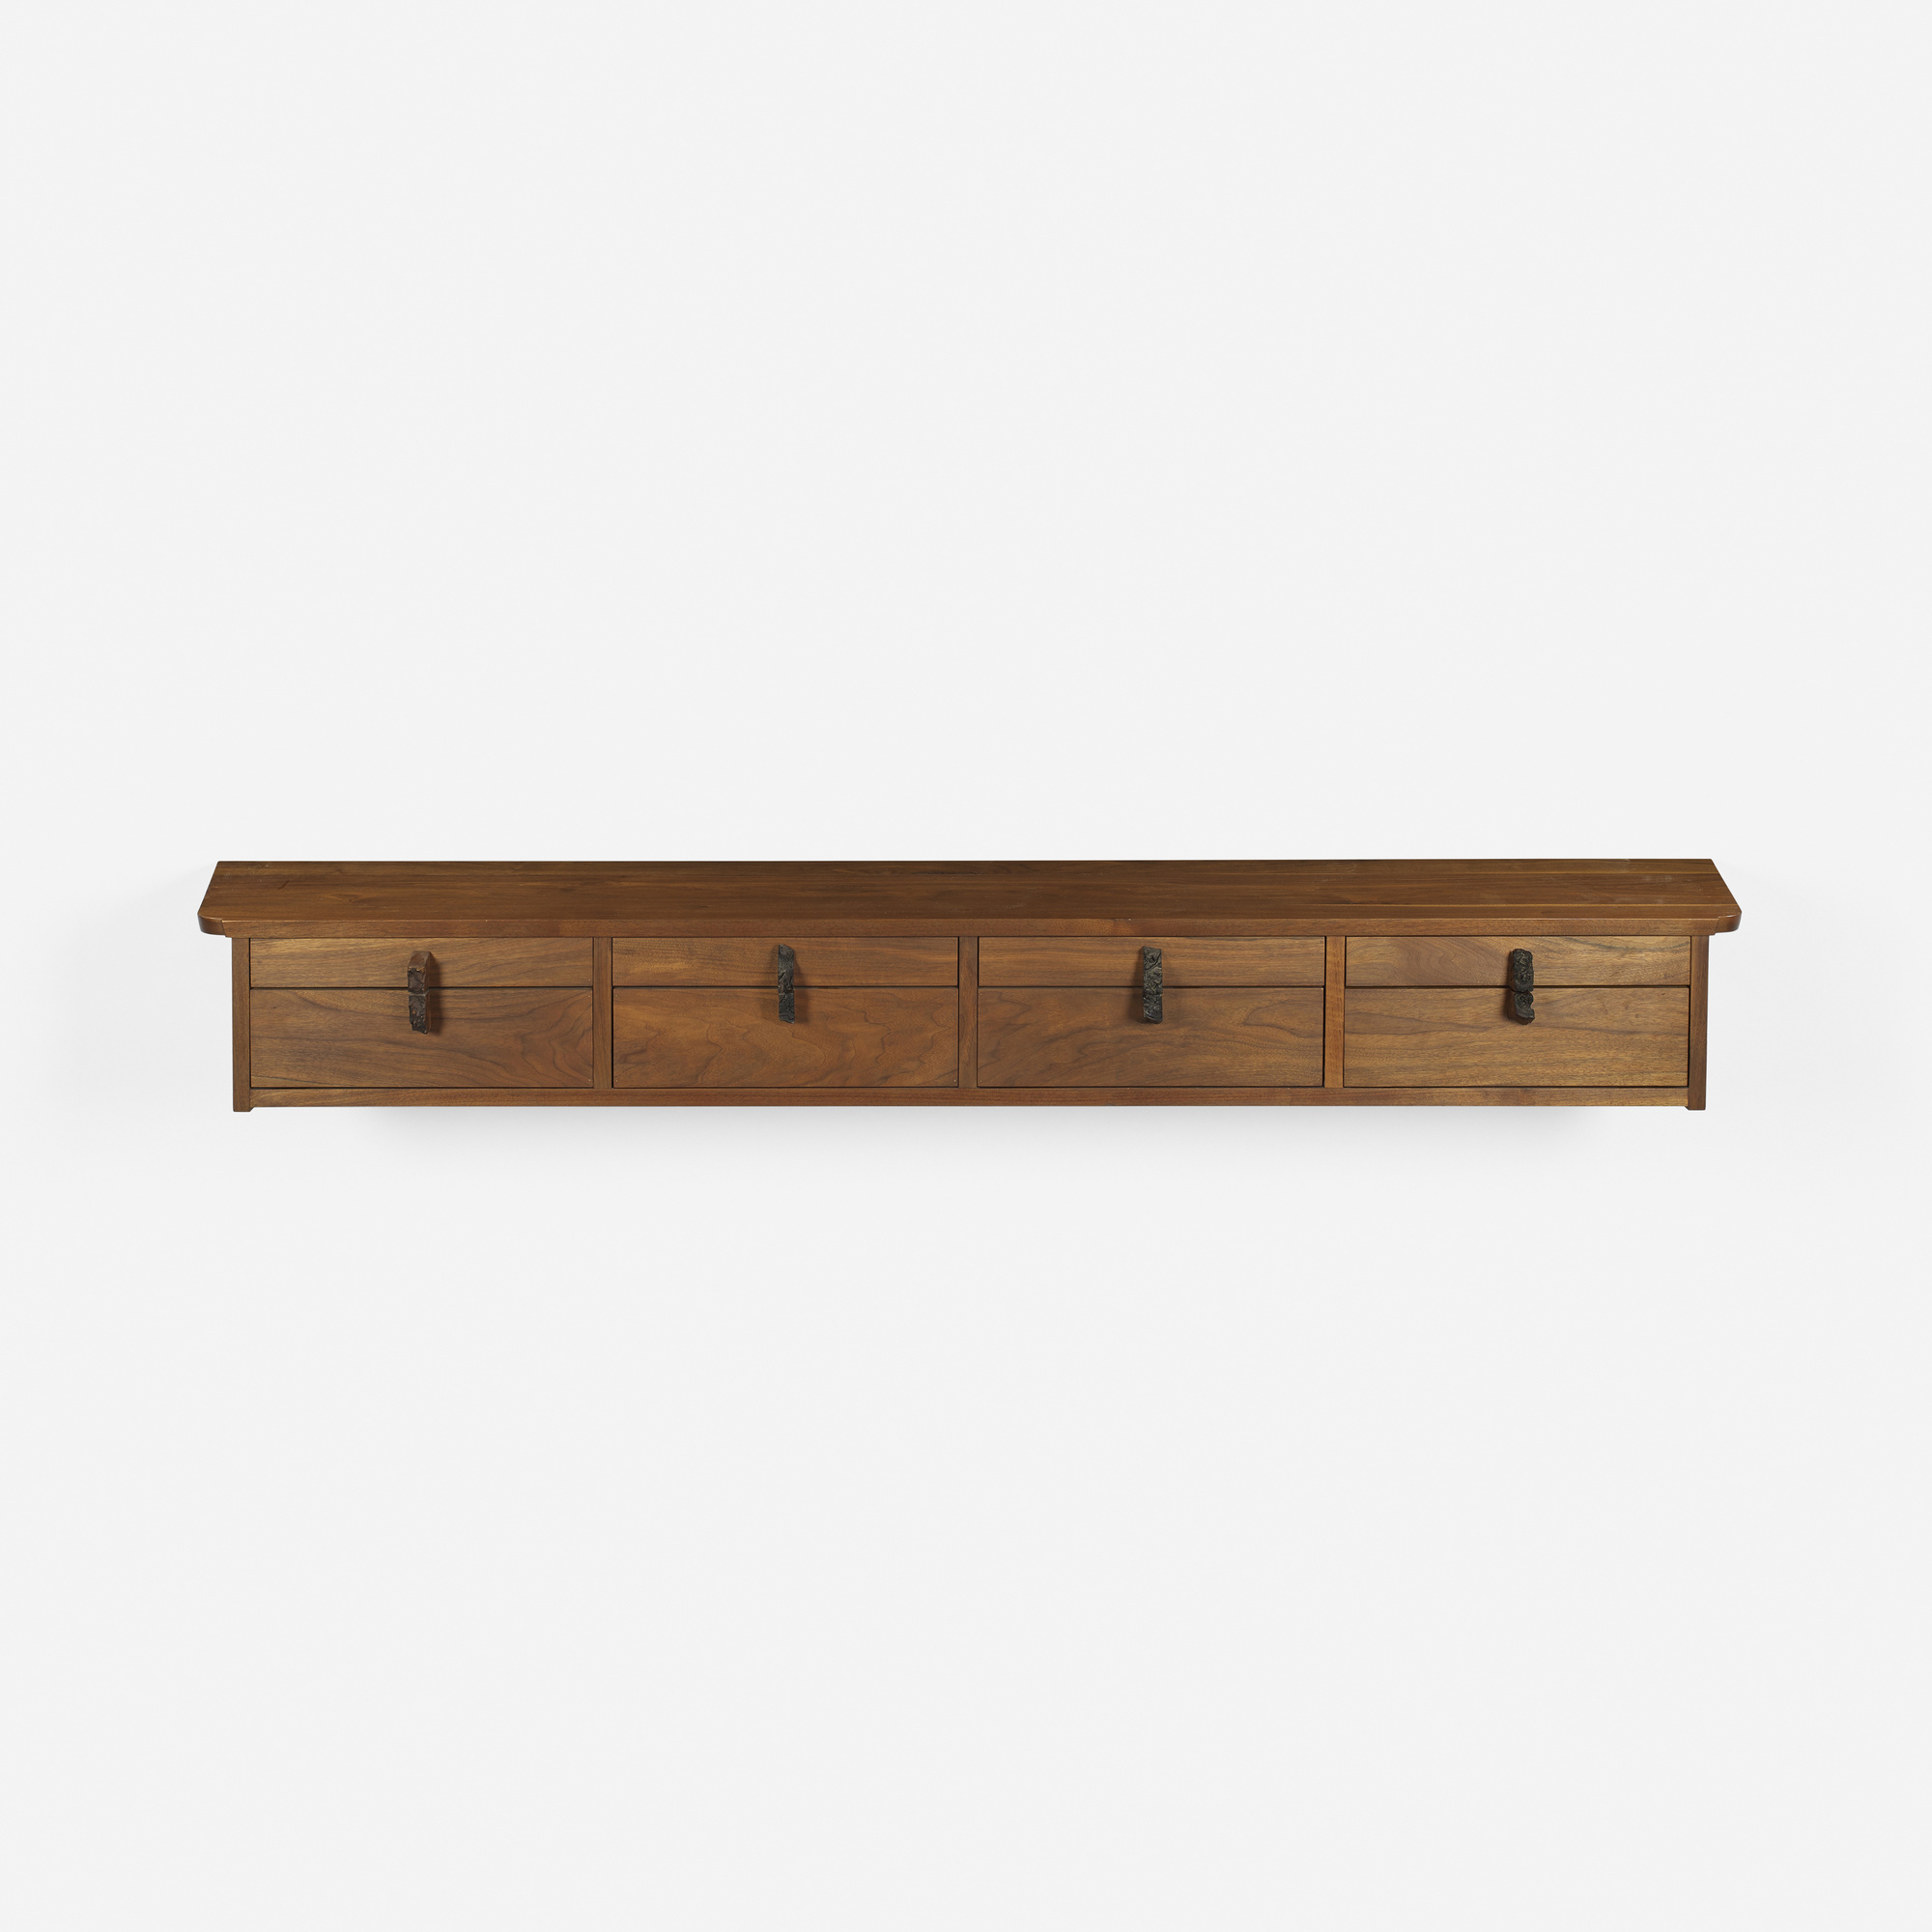 Hanging Wall Cabinet 116: george nakashima / important and early hanging wall cabinet